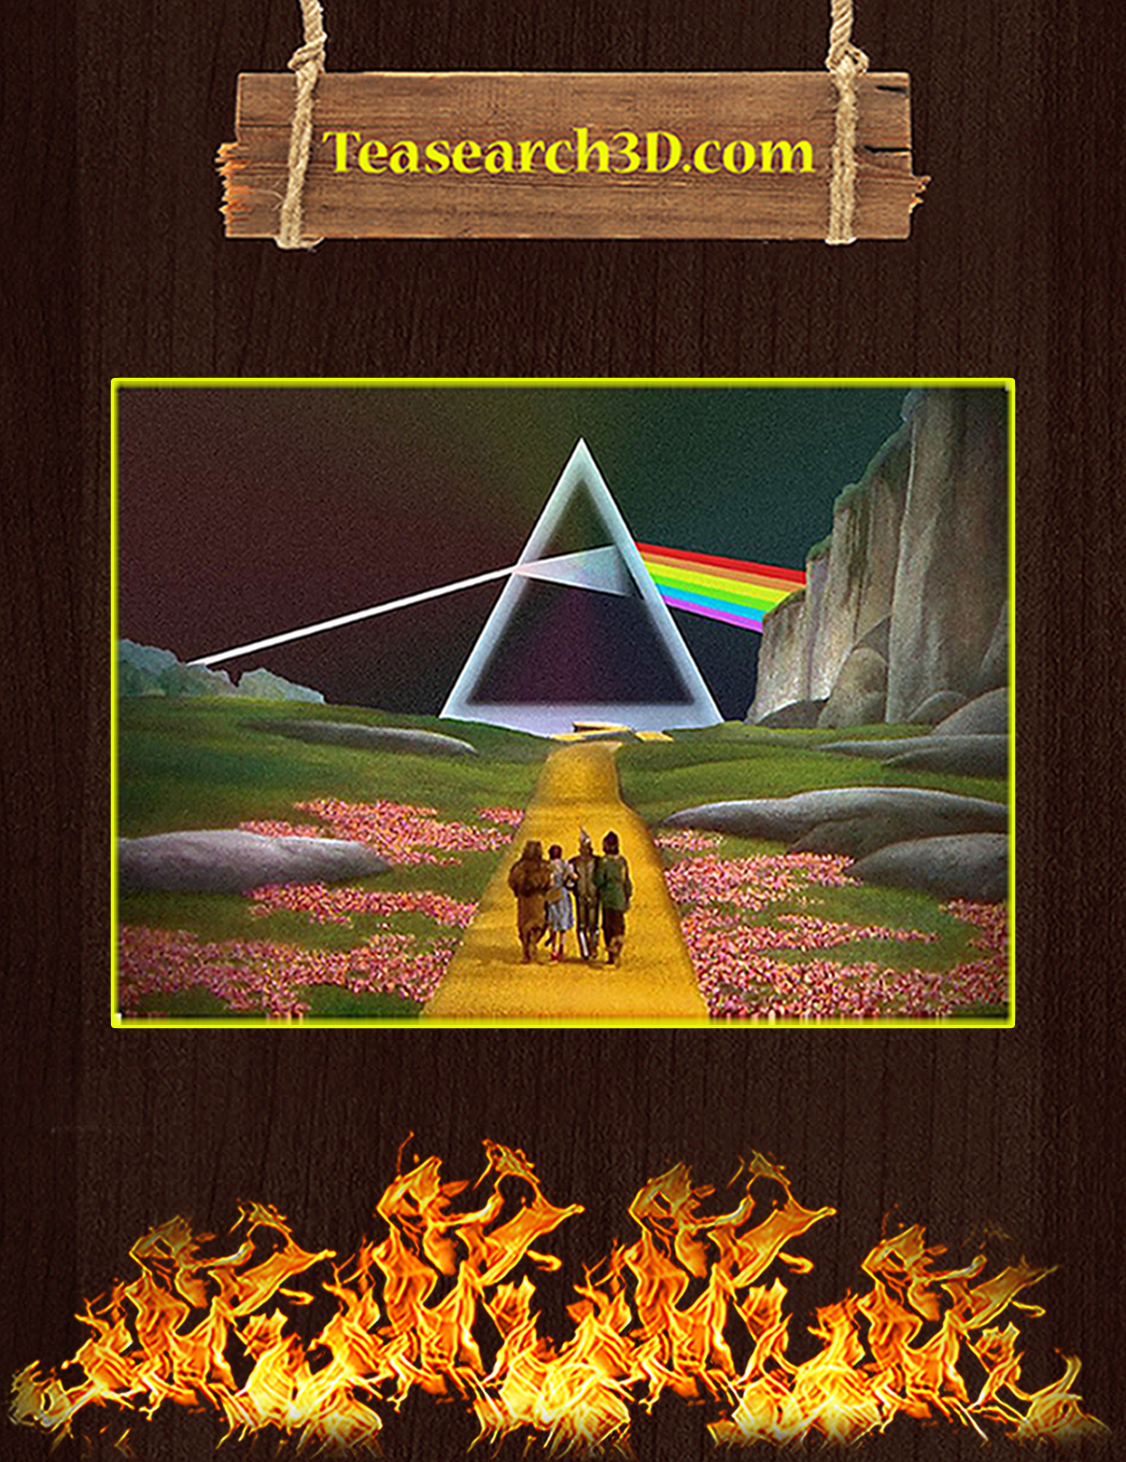 Pink floyd the dark side of the moon wizard of oz poster A3